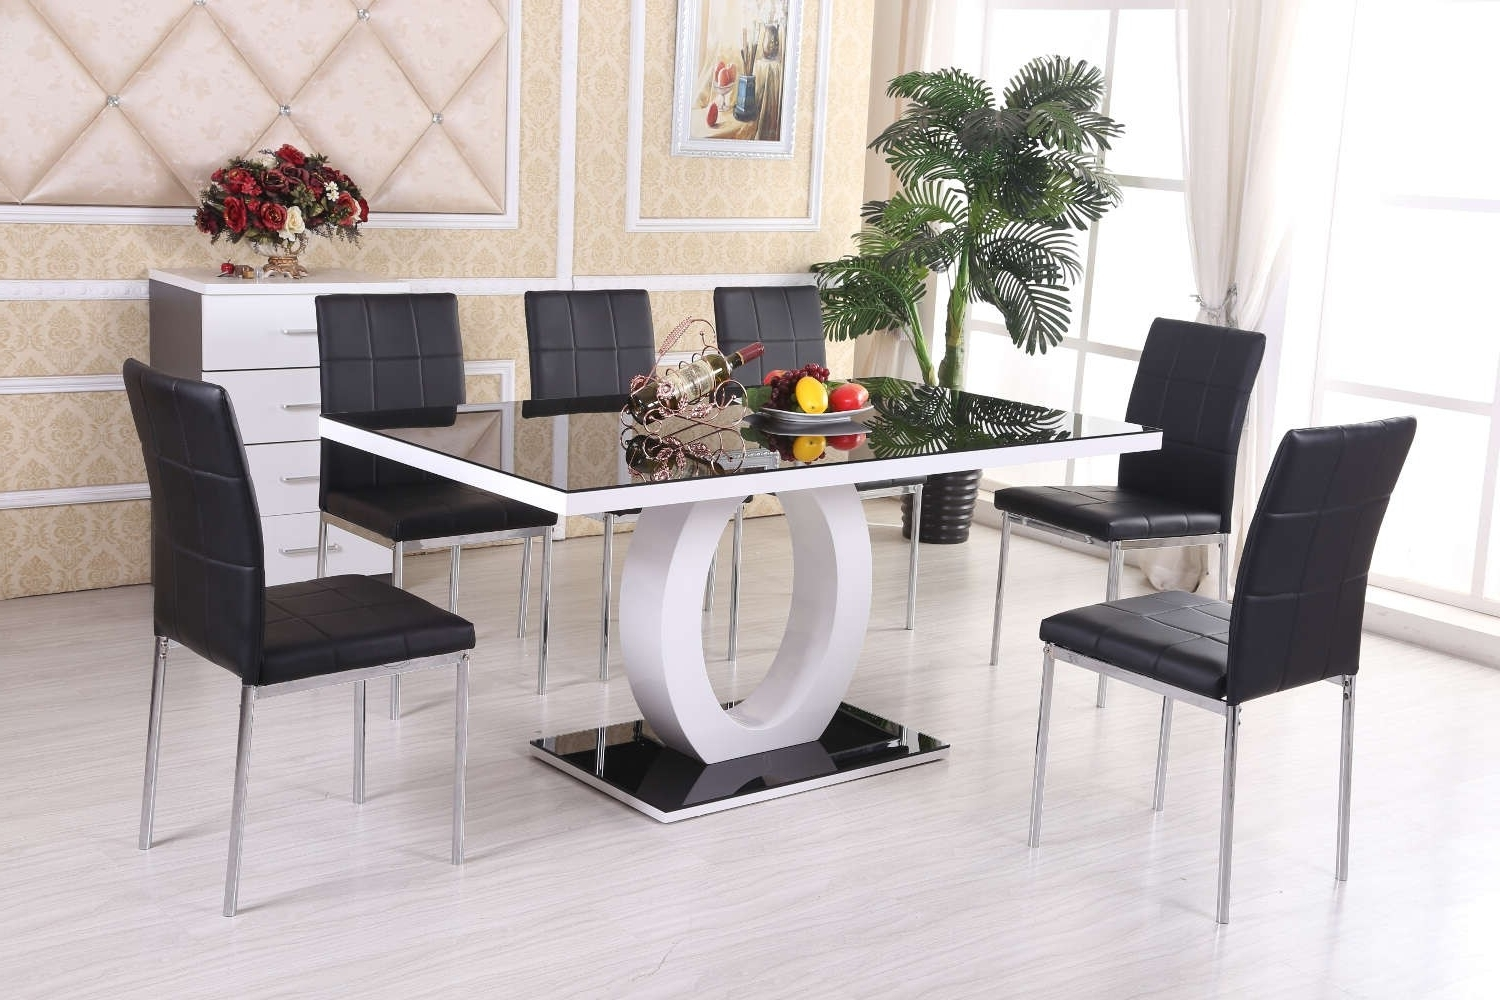 Black Glass Dining Tables And 6 Chairs Intended For Famous Dining Table Set With 6 Chairs – Castrophotos (Gallery 21 of 25)